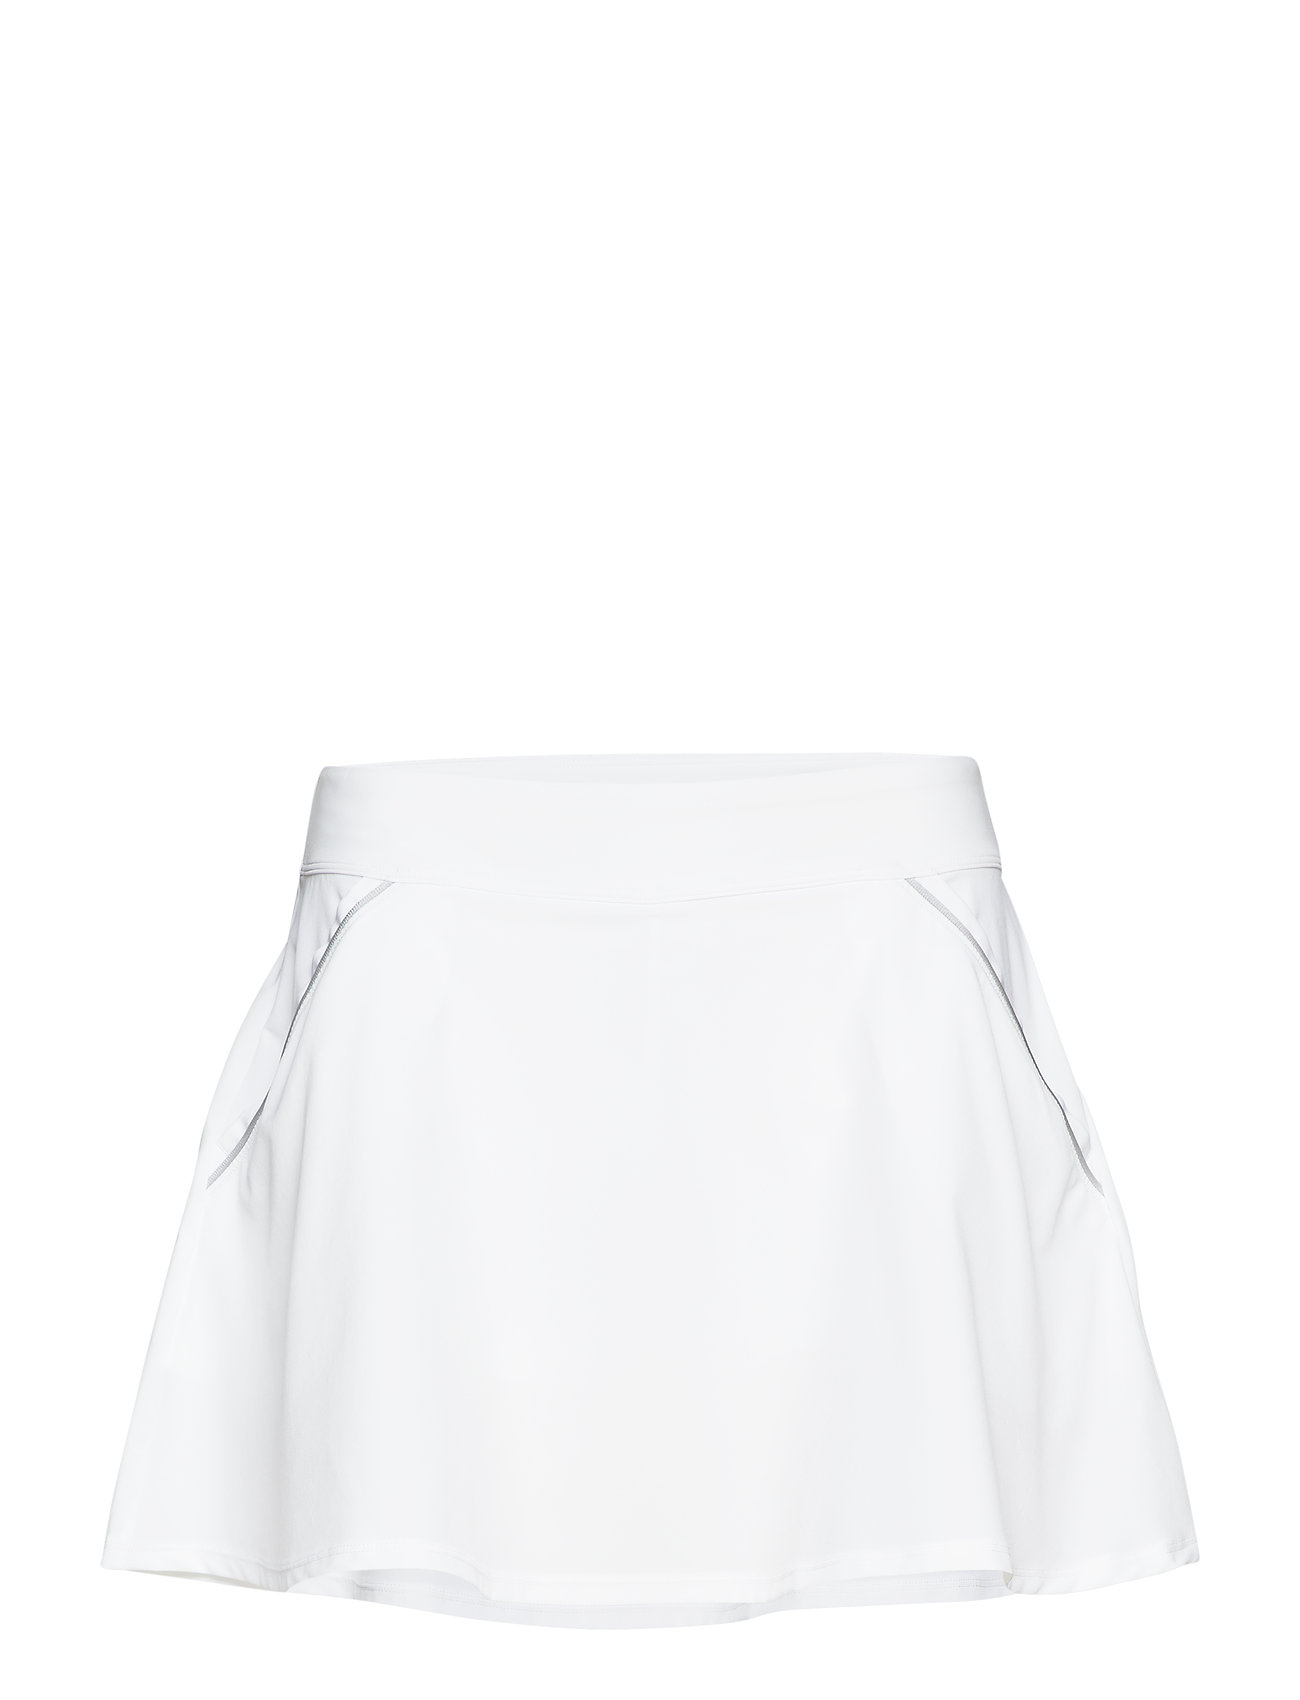 Under Armour Links Skort - WHITE